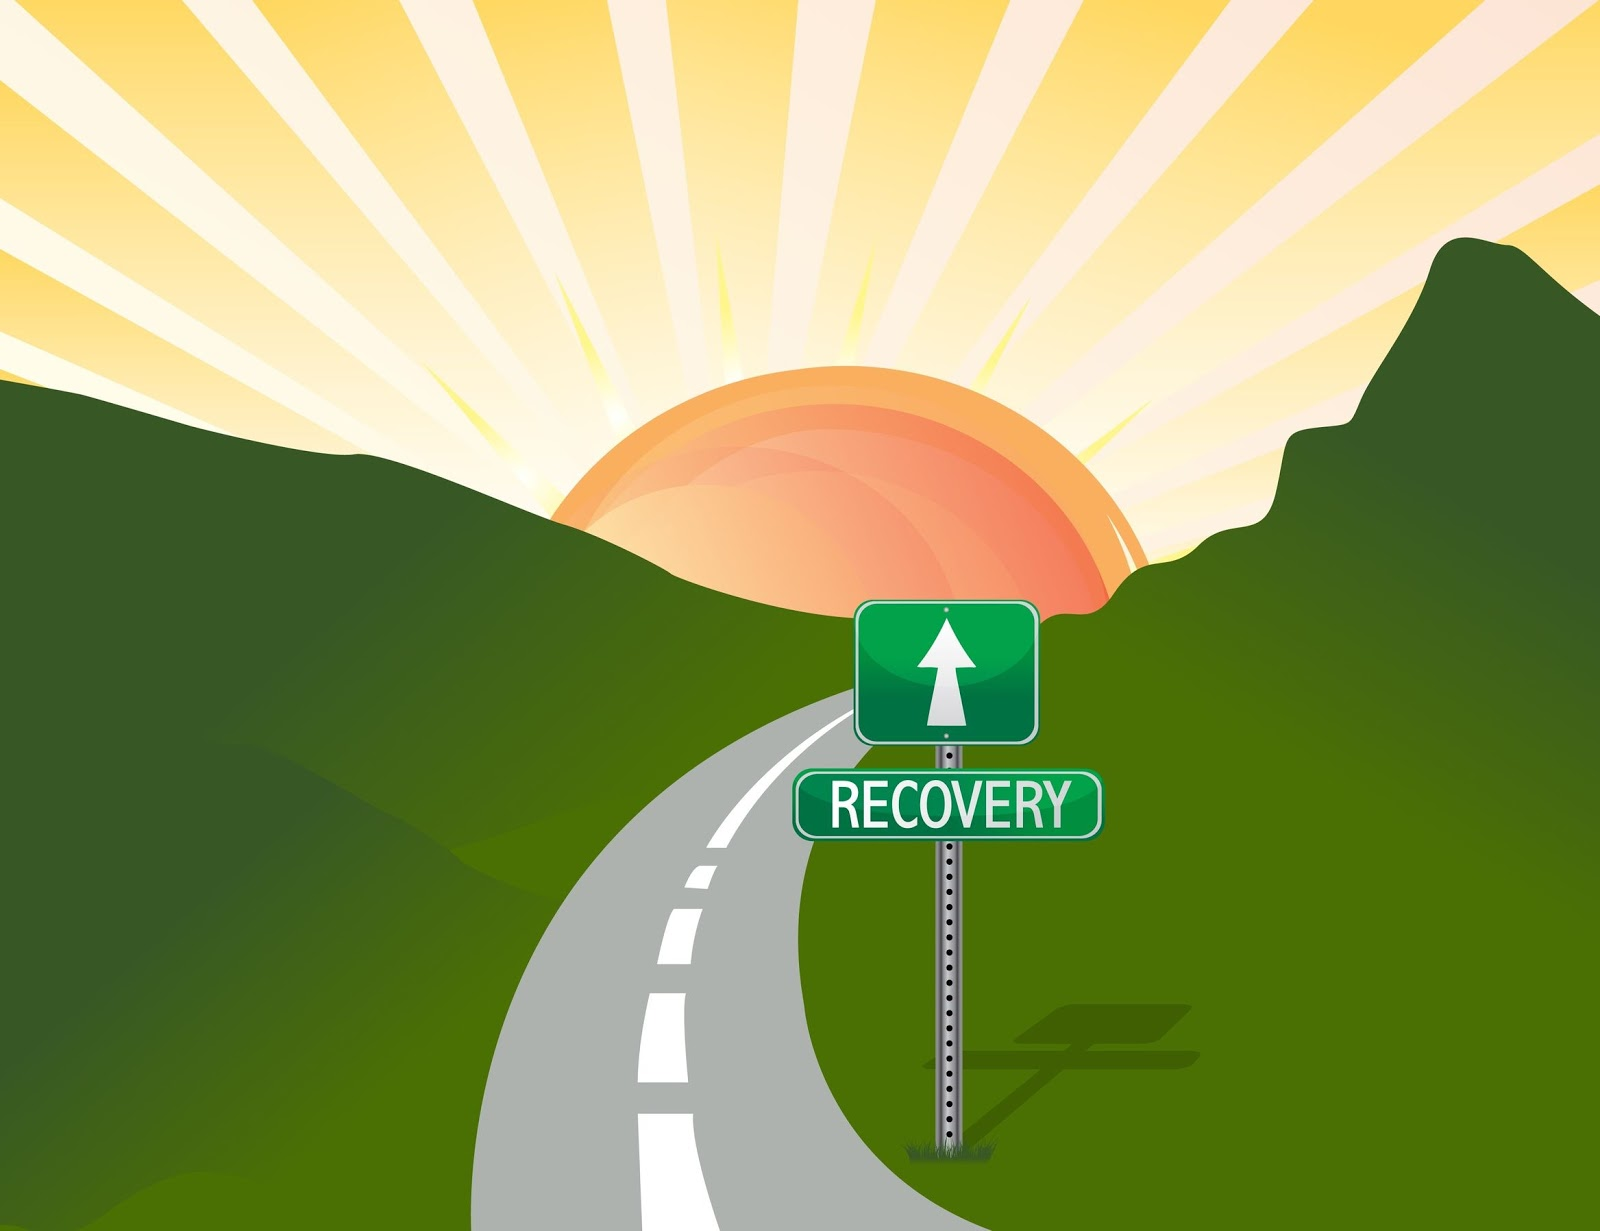 ROUTE TO RECOVERY